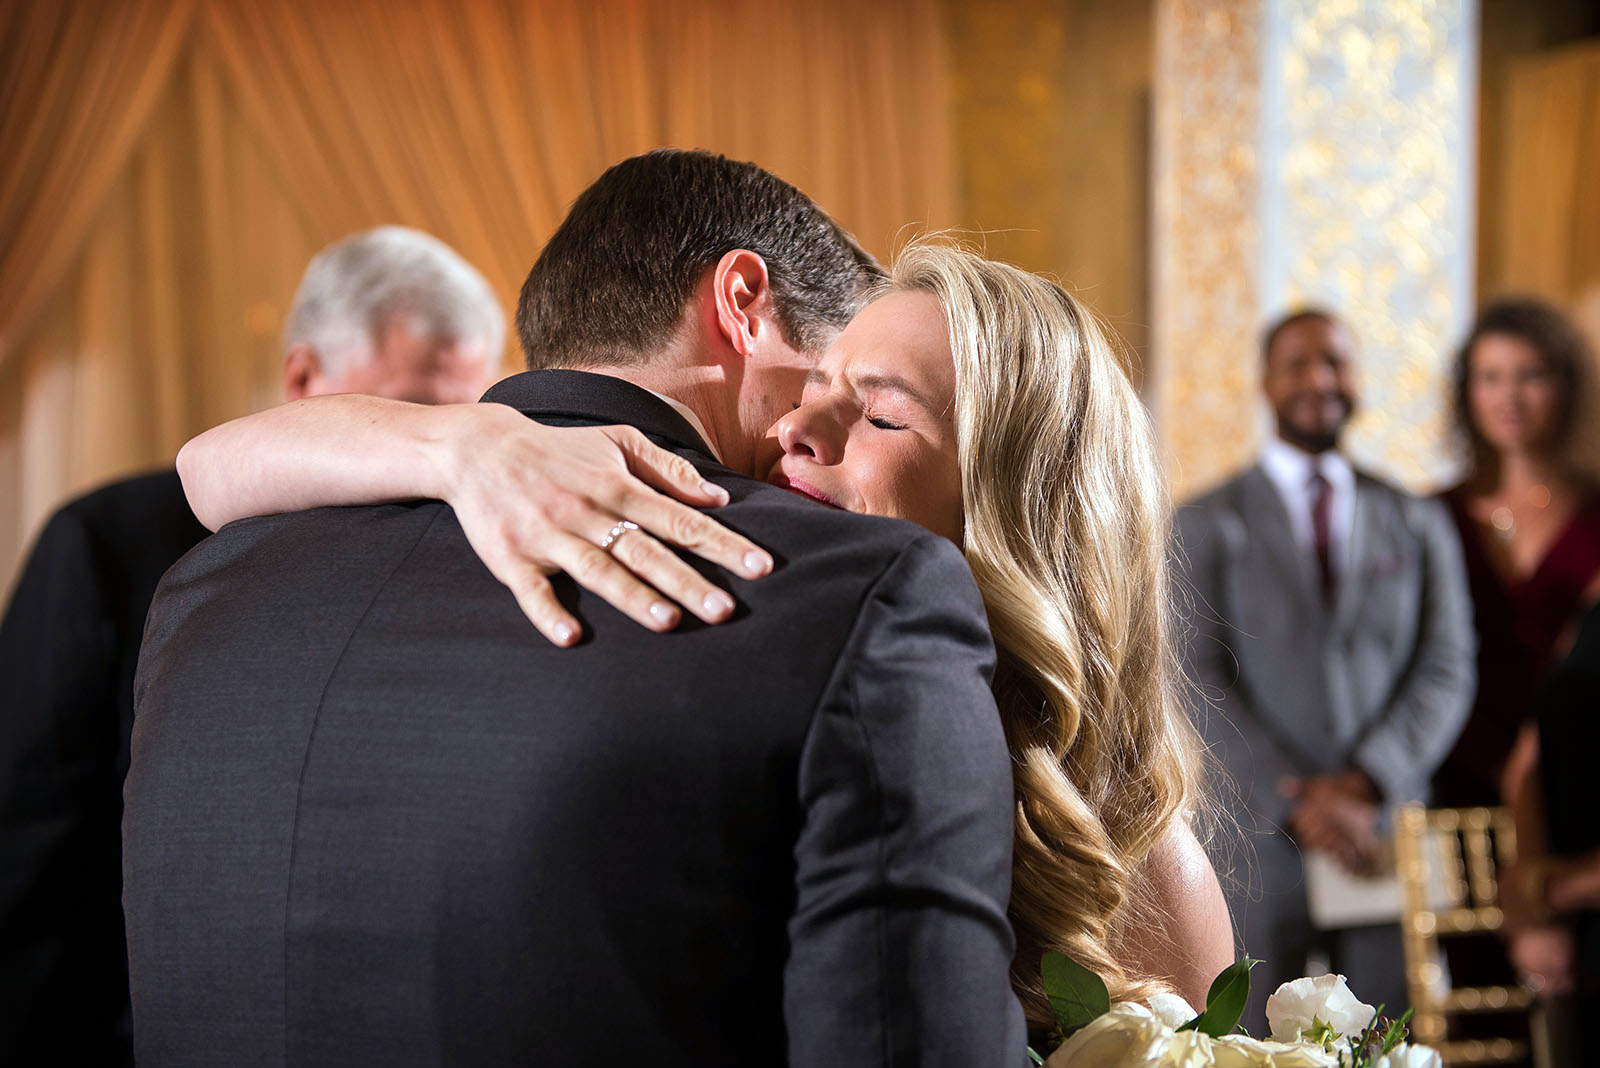 Tearful embrace Bride Groom Wedding